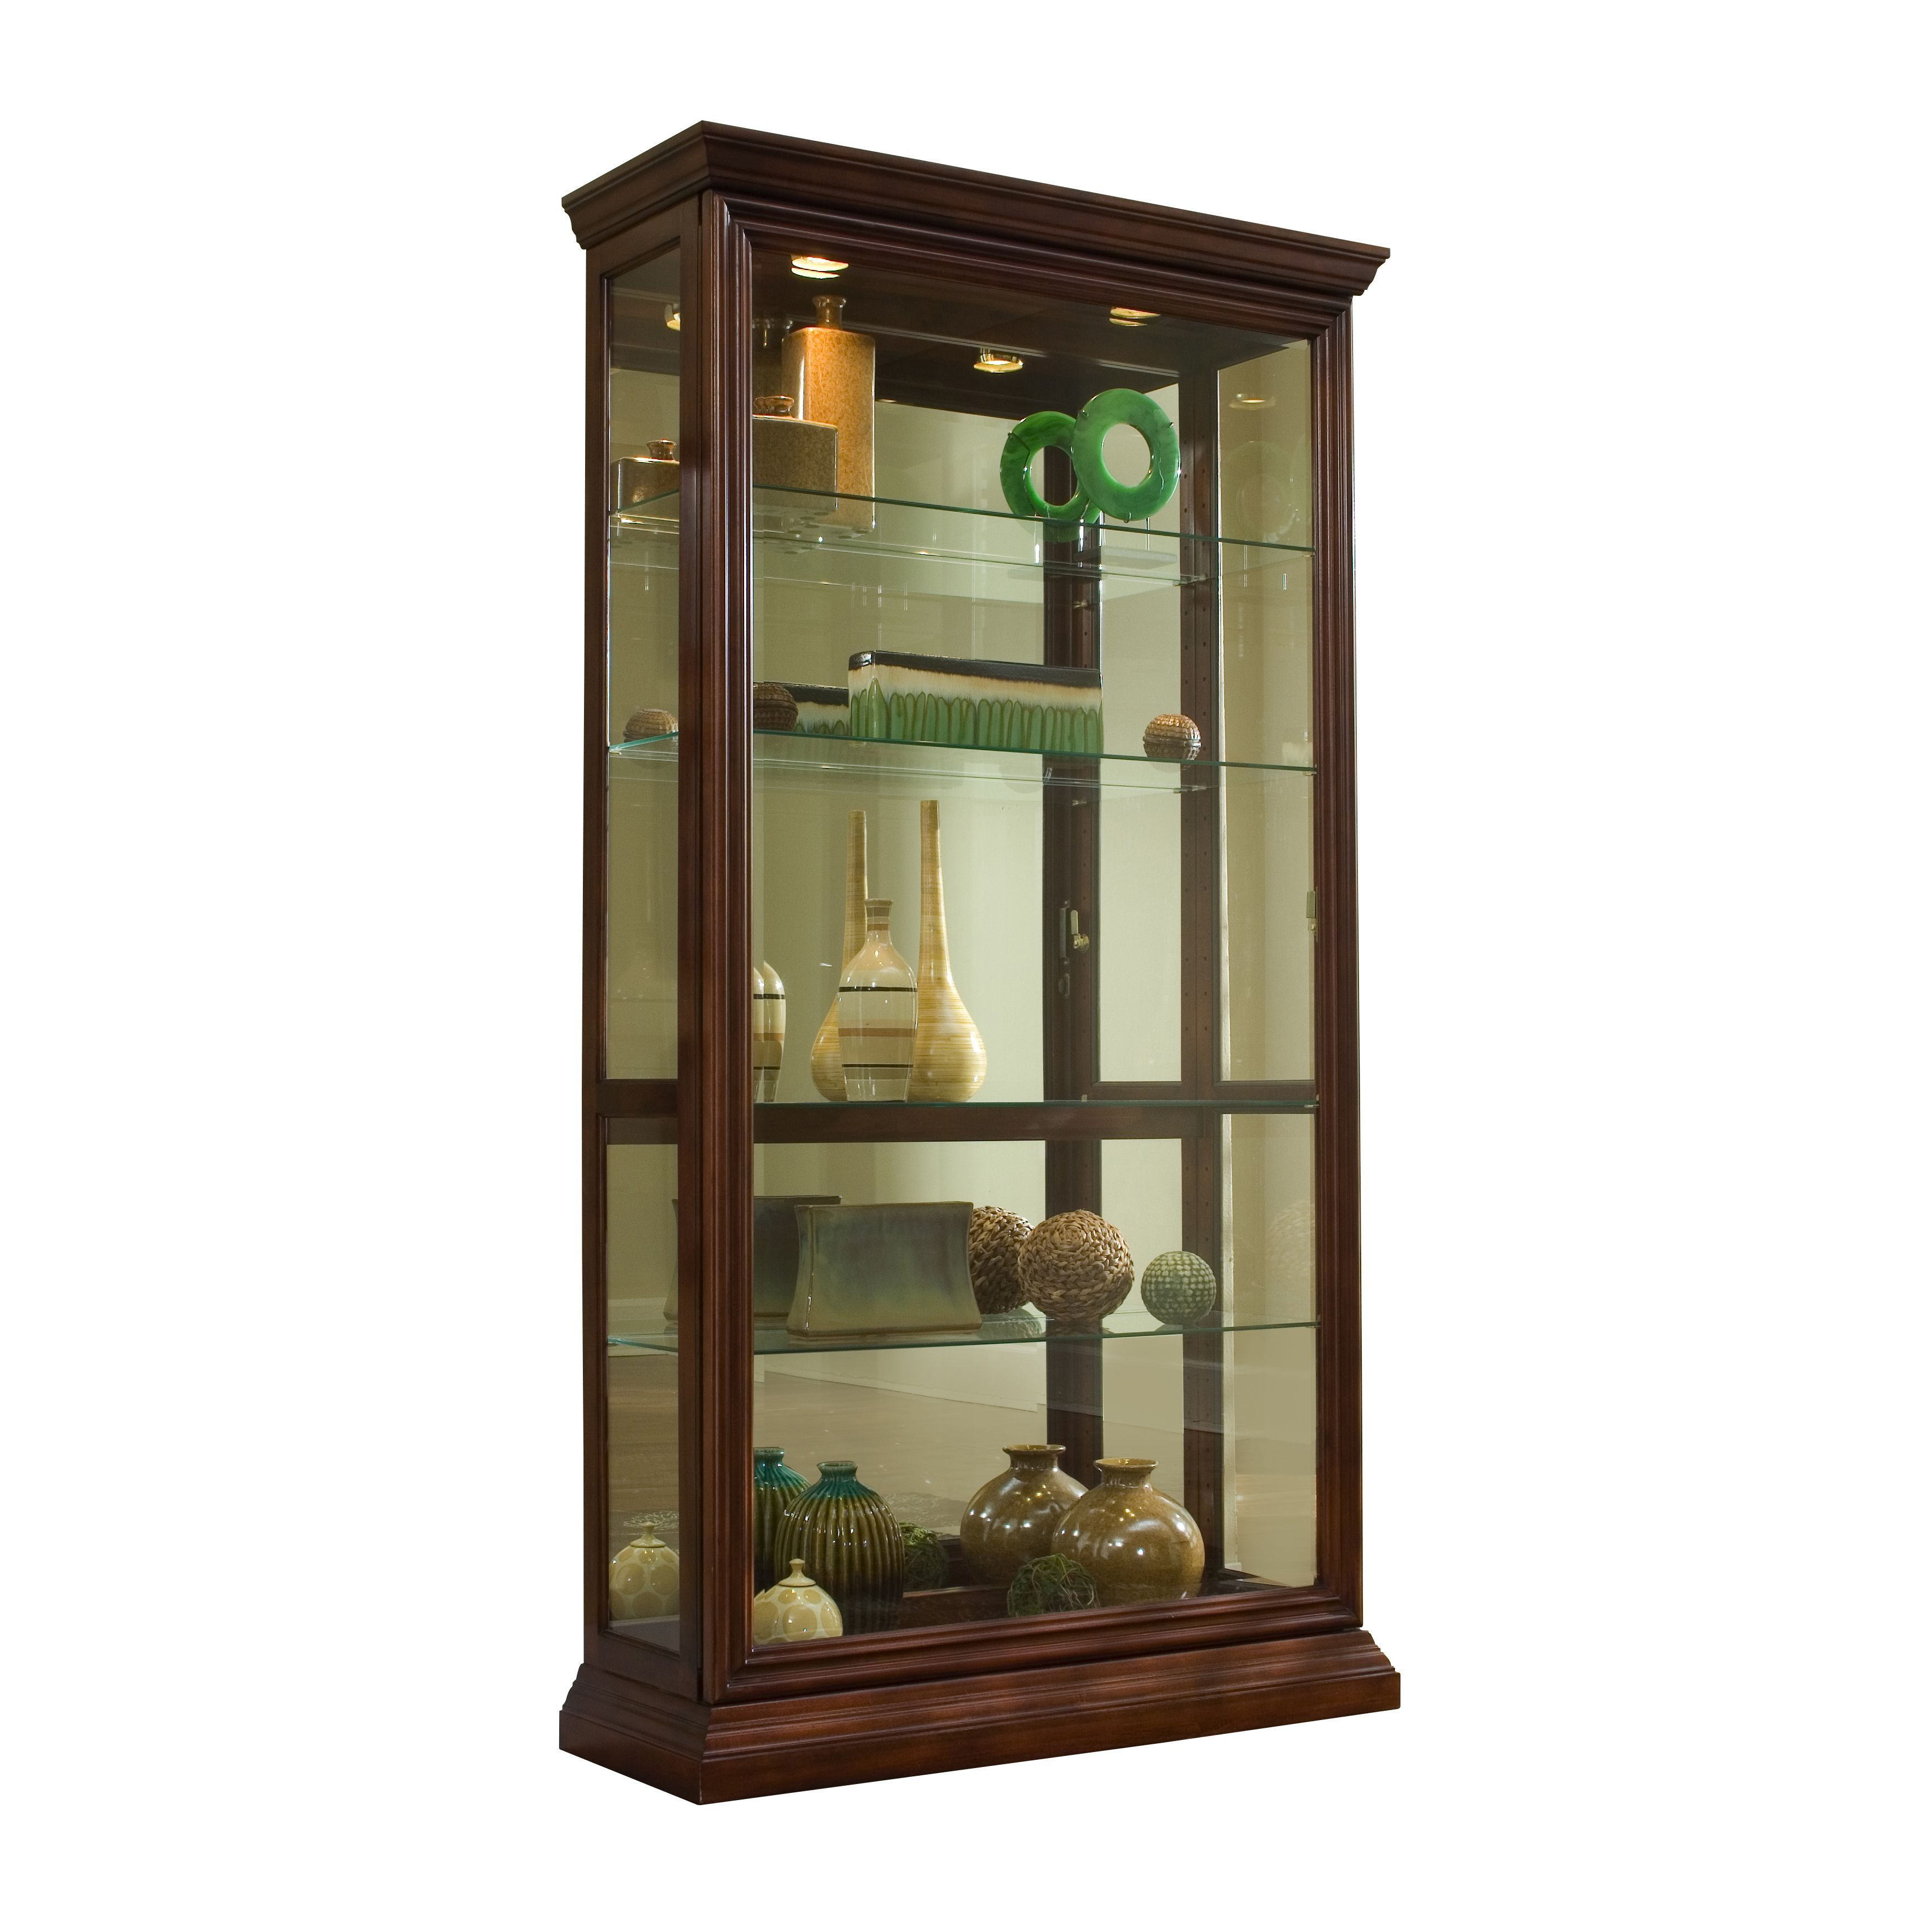 Medium Brown Finish Two Way Sliding Door Curio Cabinet (Curio Cabinet)